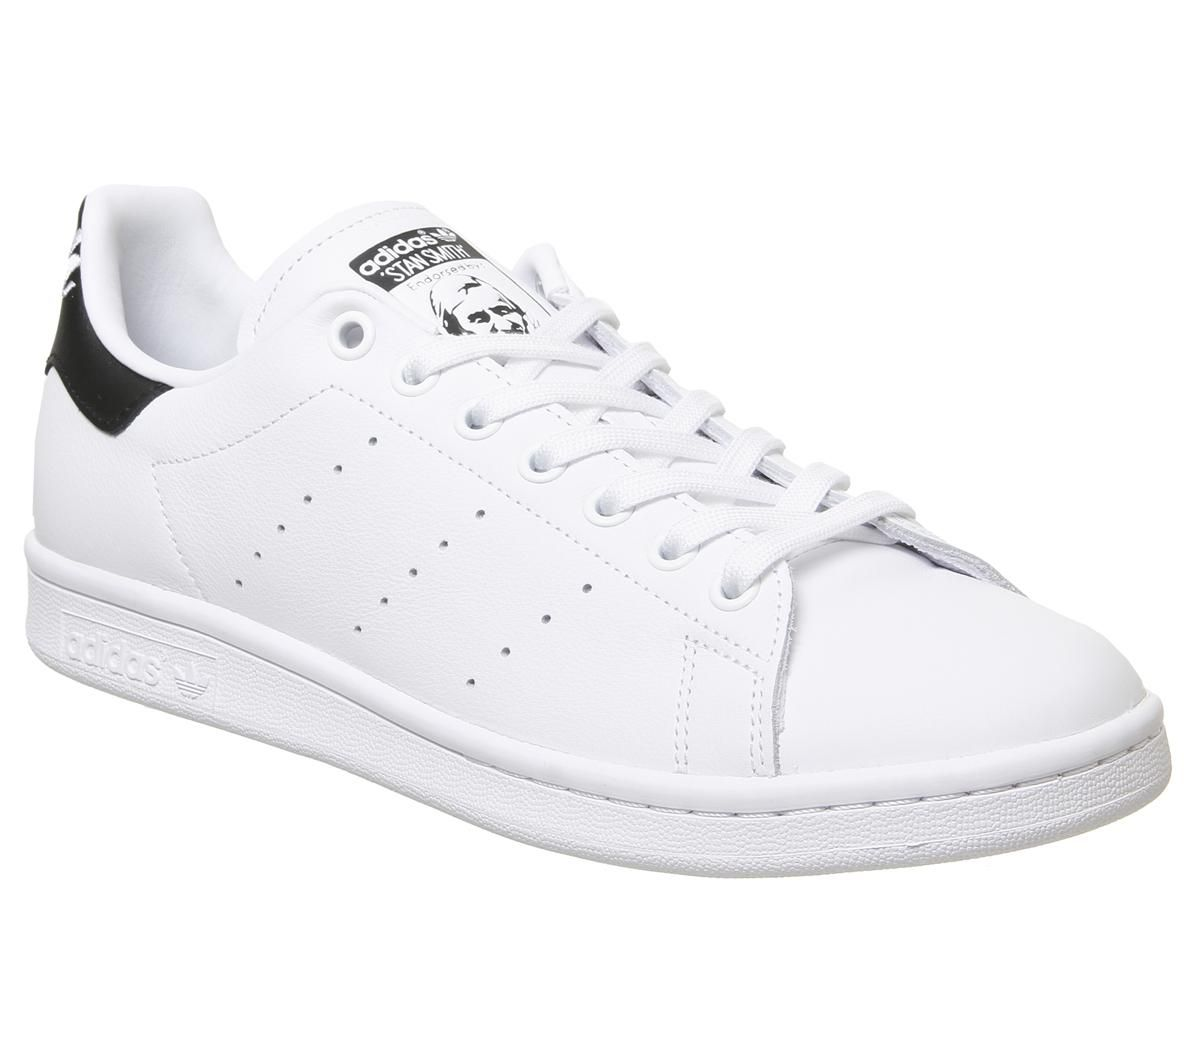 adidas Stan Smith Trainers White Black White - His trainers